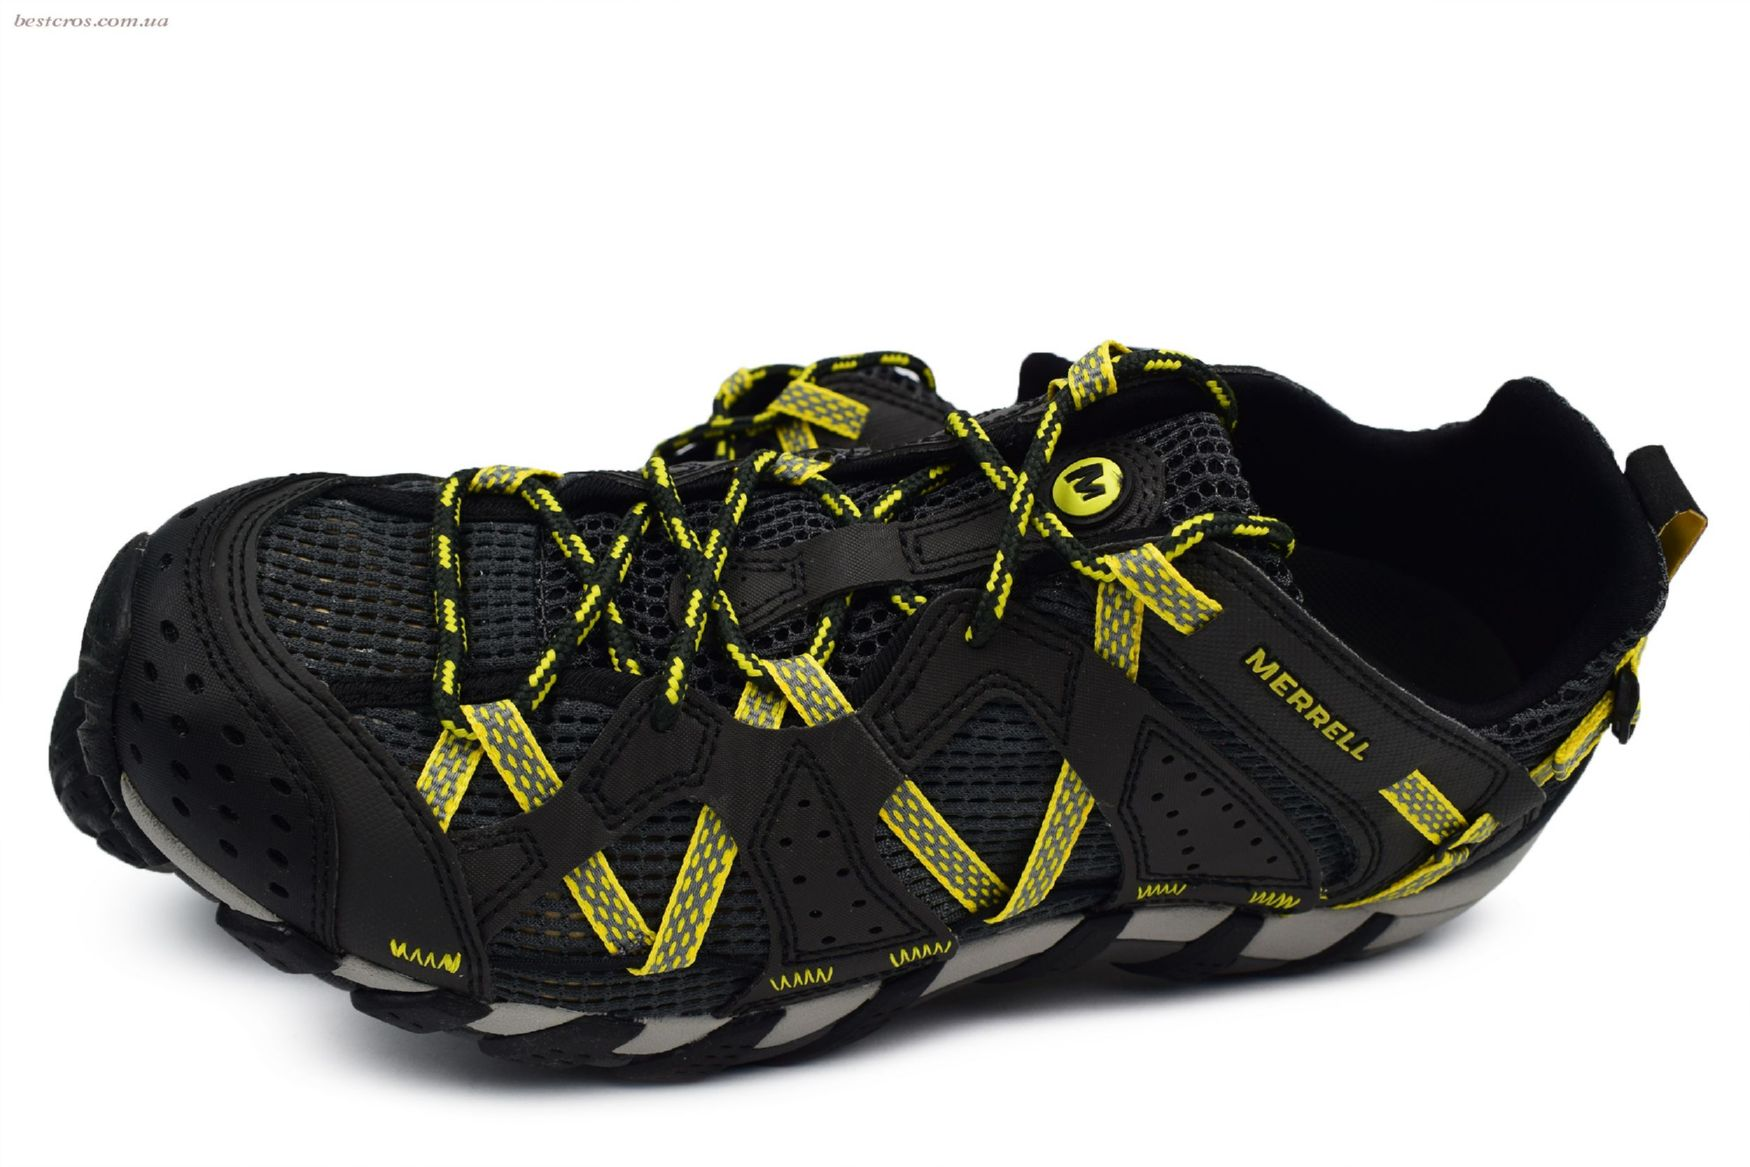 Мужские кроссовки Merrell Waterpro Maipo Black/Yellow - фото №4